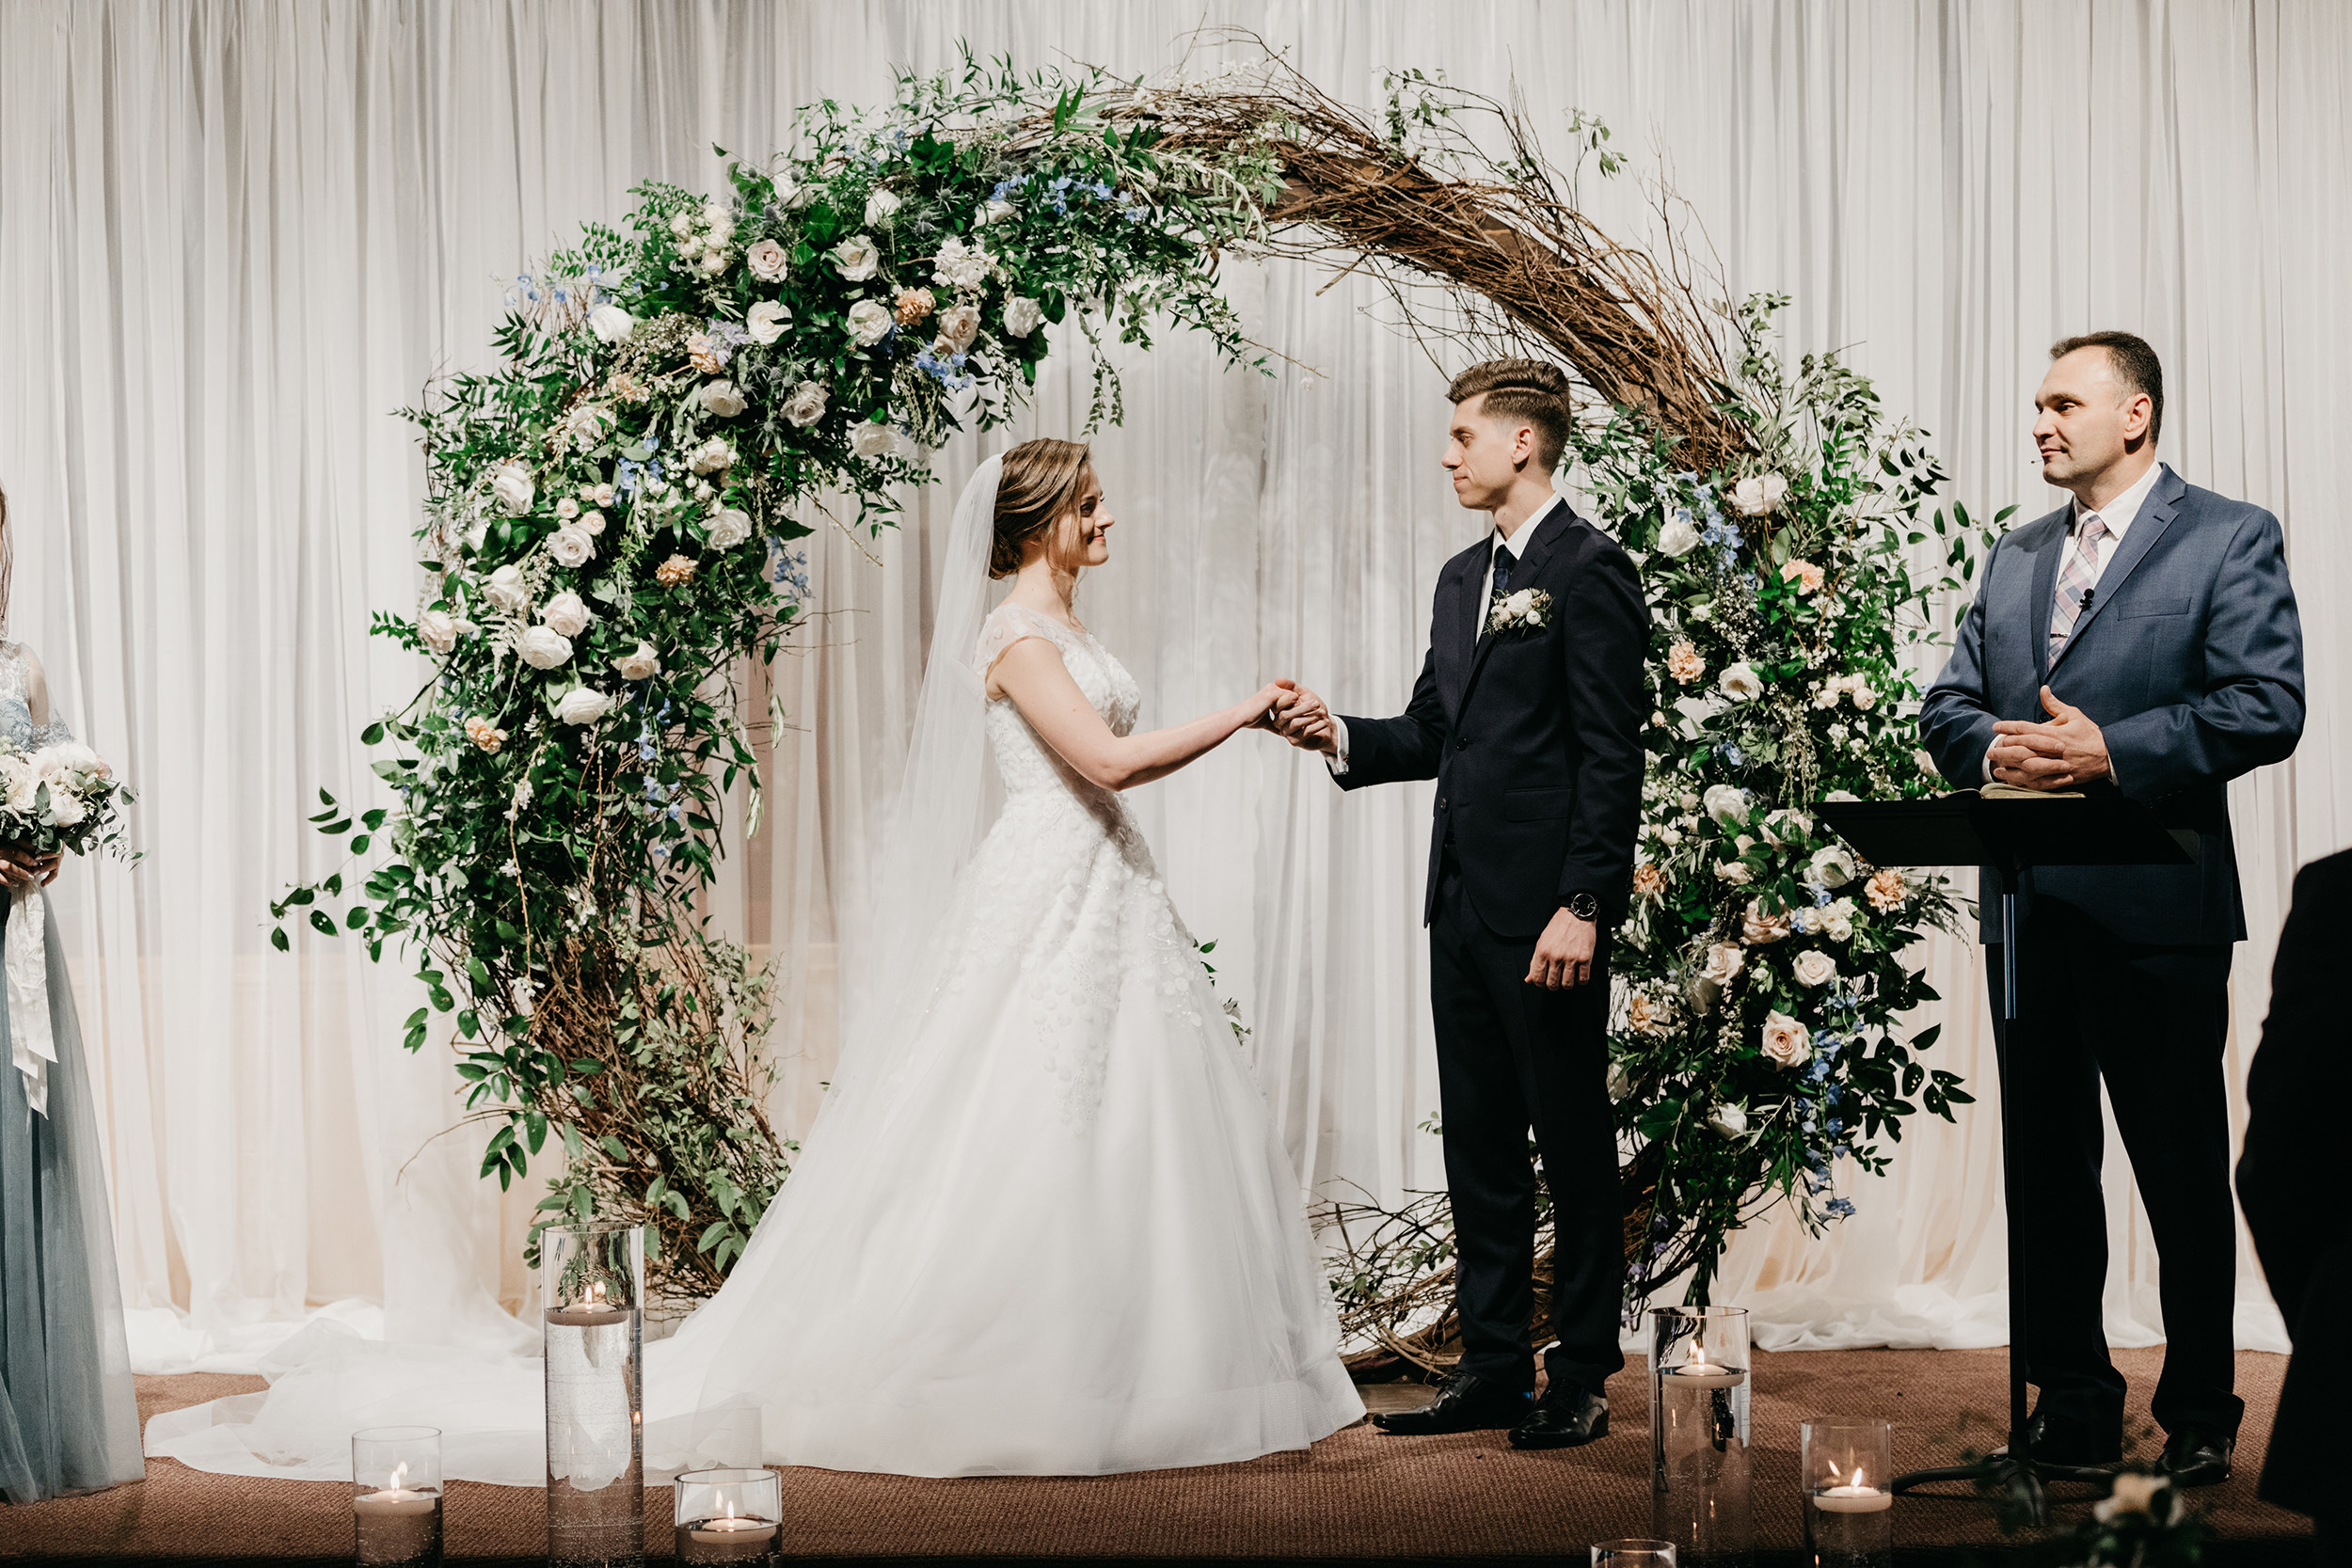 Violette-fleurs-event-design-roseville-Nelli-noel-photography-the-falls-event-center-Curated-Classic-Wedding-design-Sacramento-Installations-round-arch-ceremony.jpg